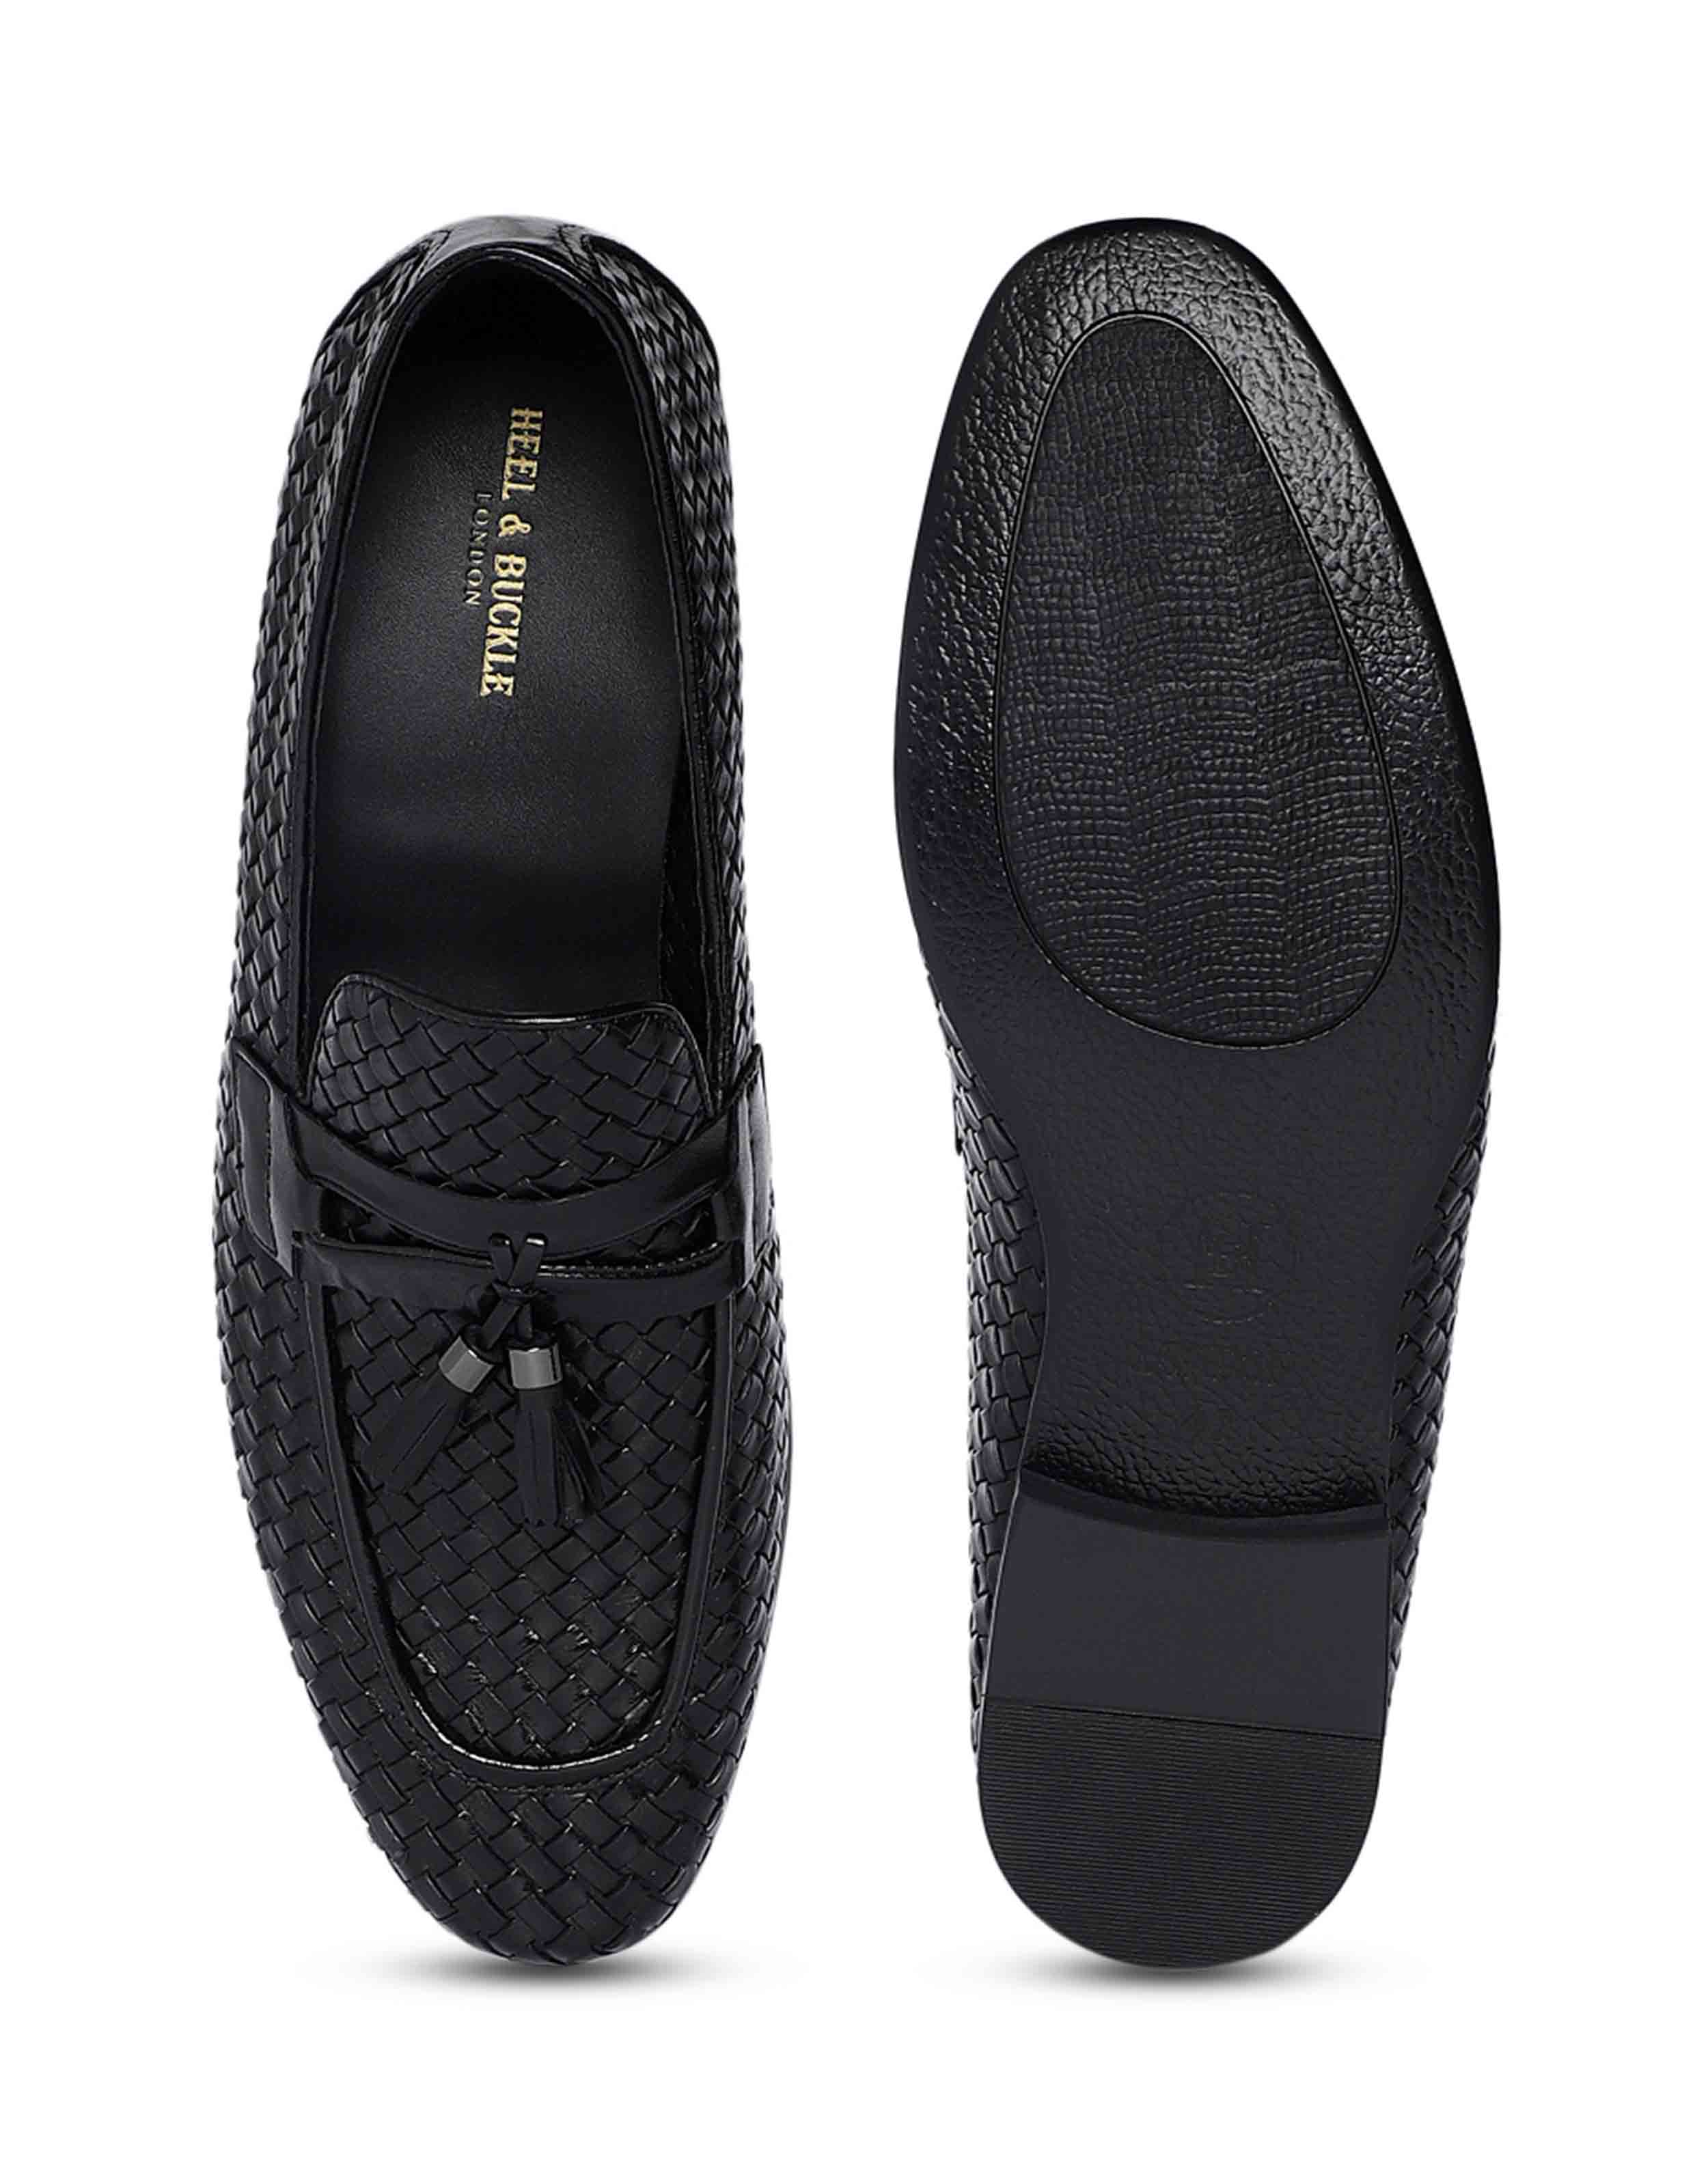 Charcoal Woven Tassel Loafer 4